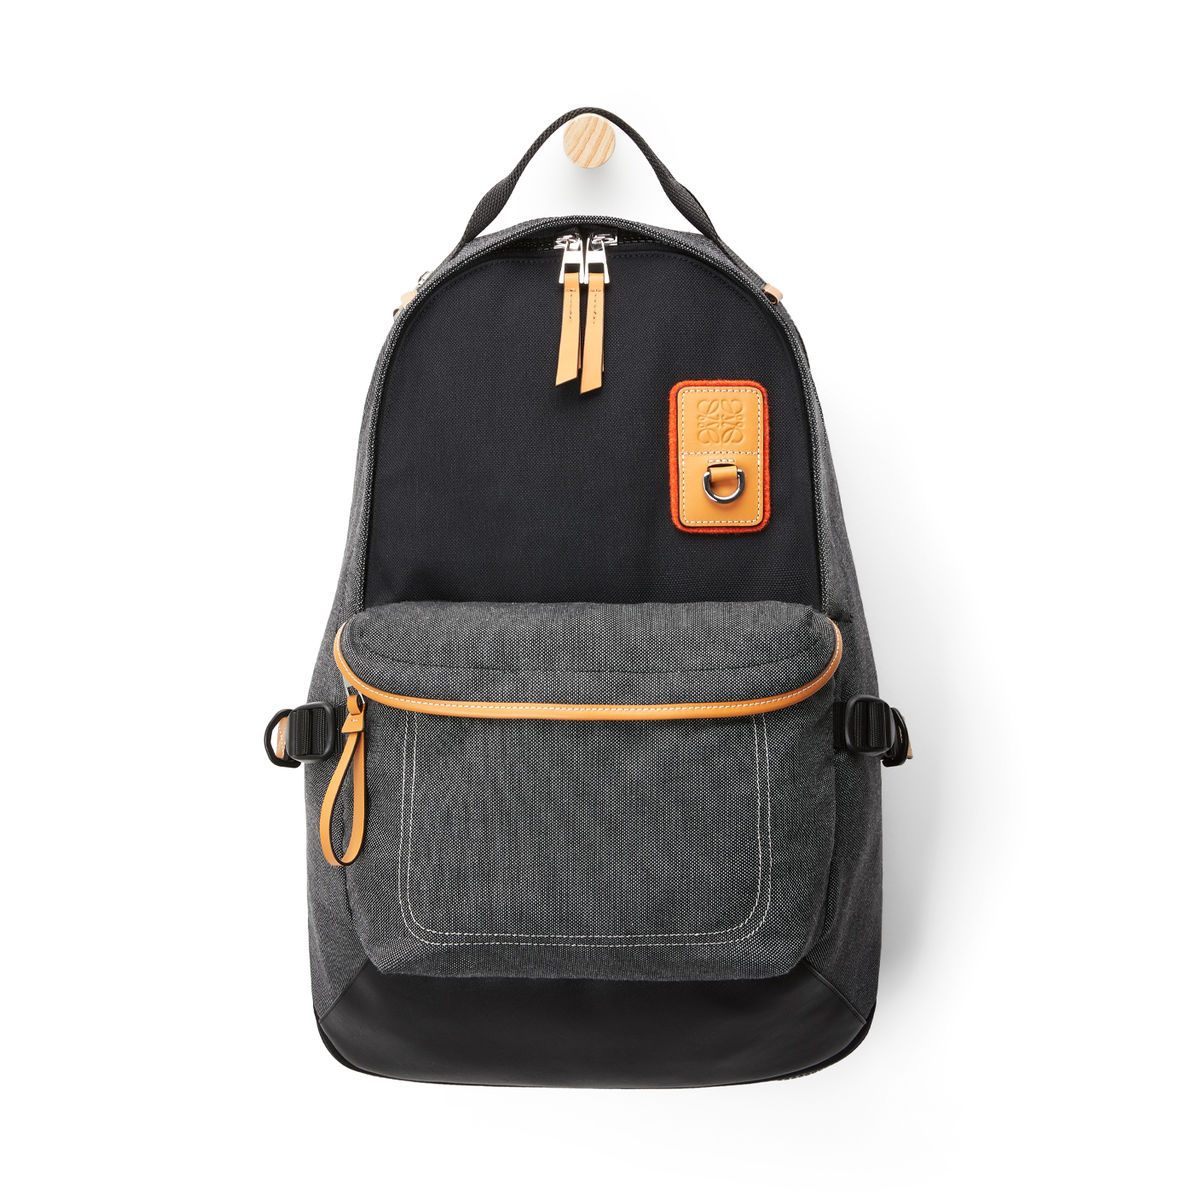 EYE/LOEWE/NATURE BACKPACK 【送料無料】